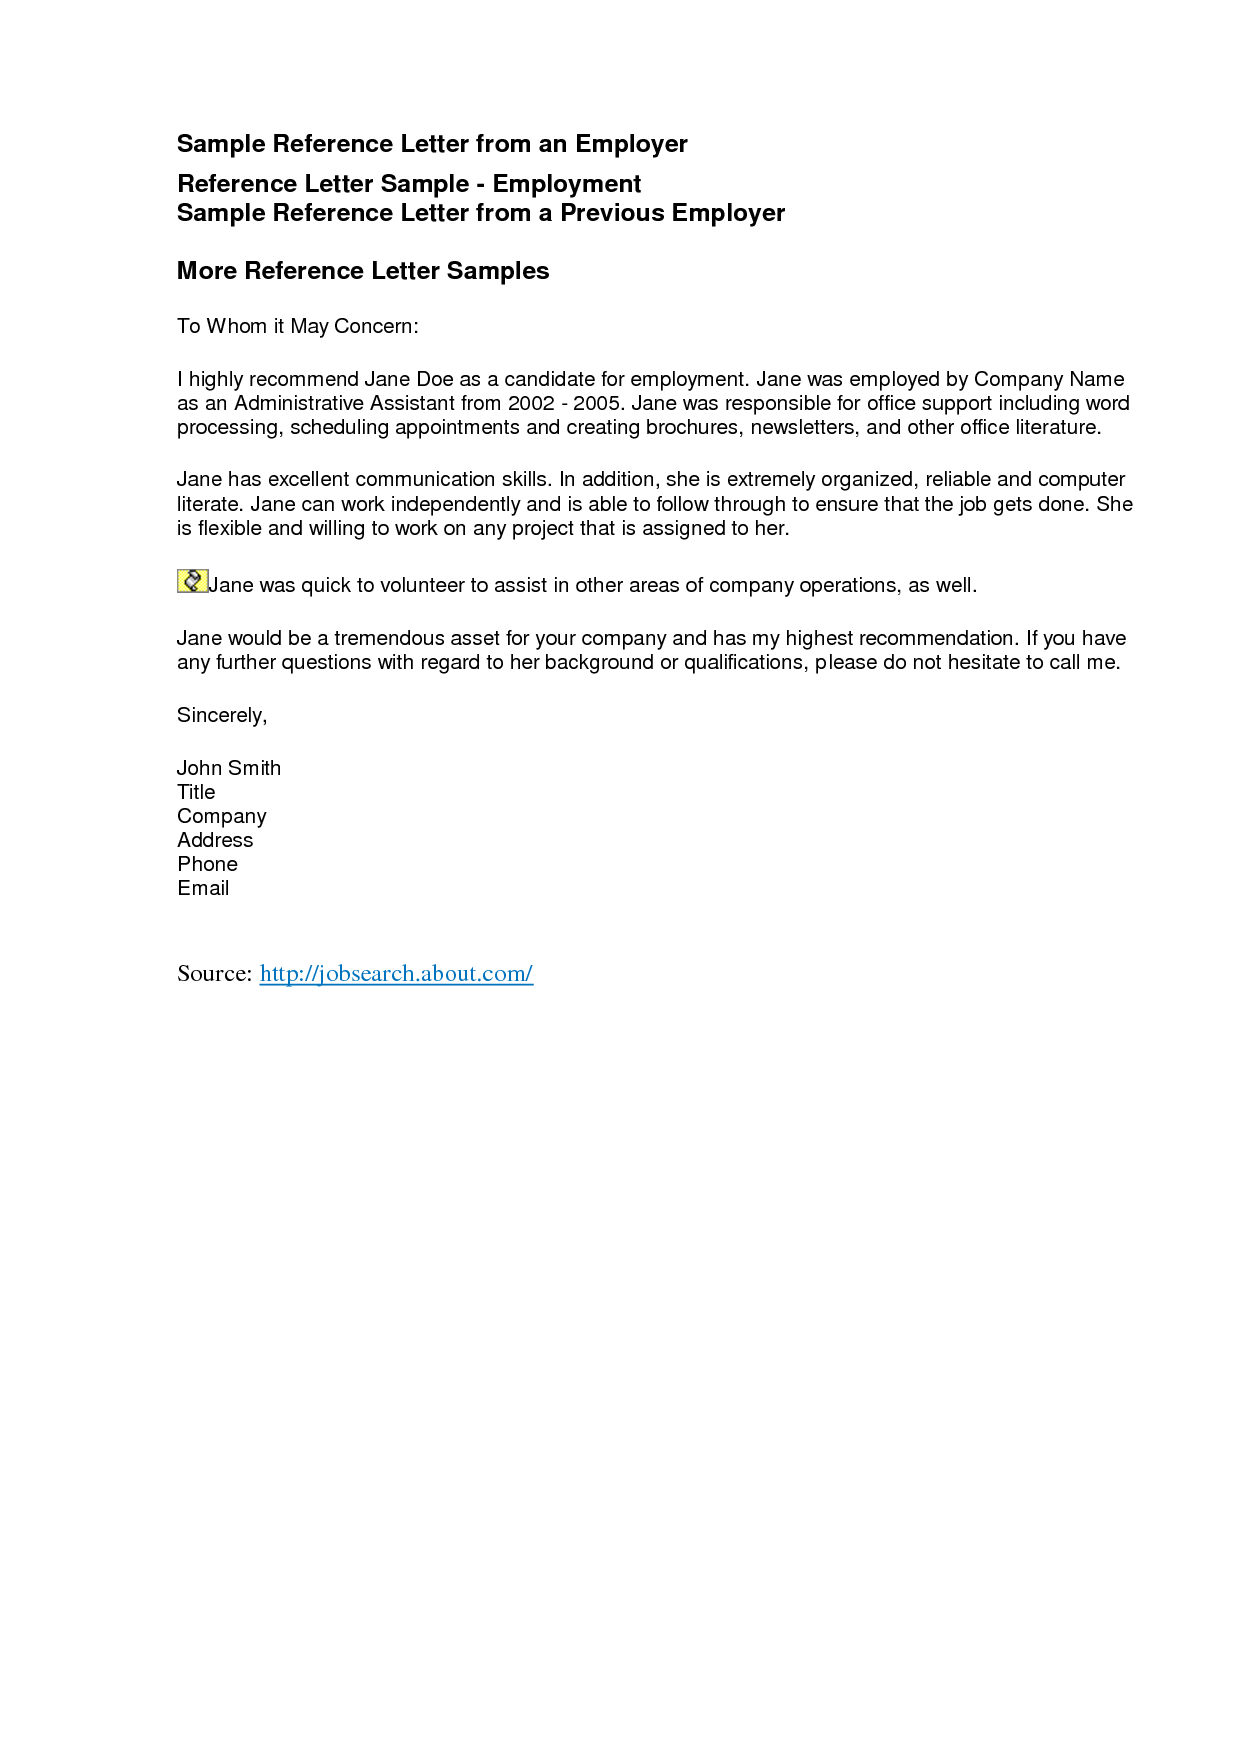 sample of a reference letter for an employee – Template for a Reference for an Employee